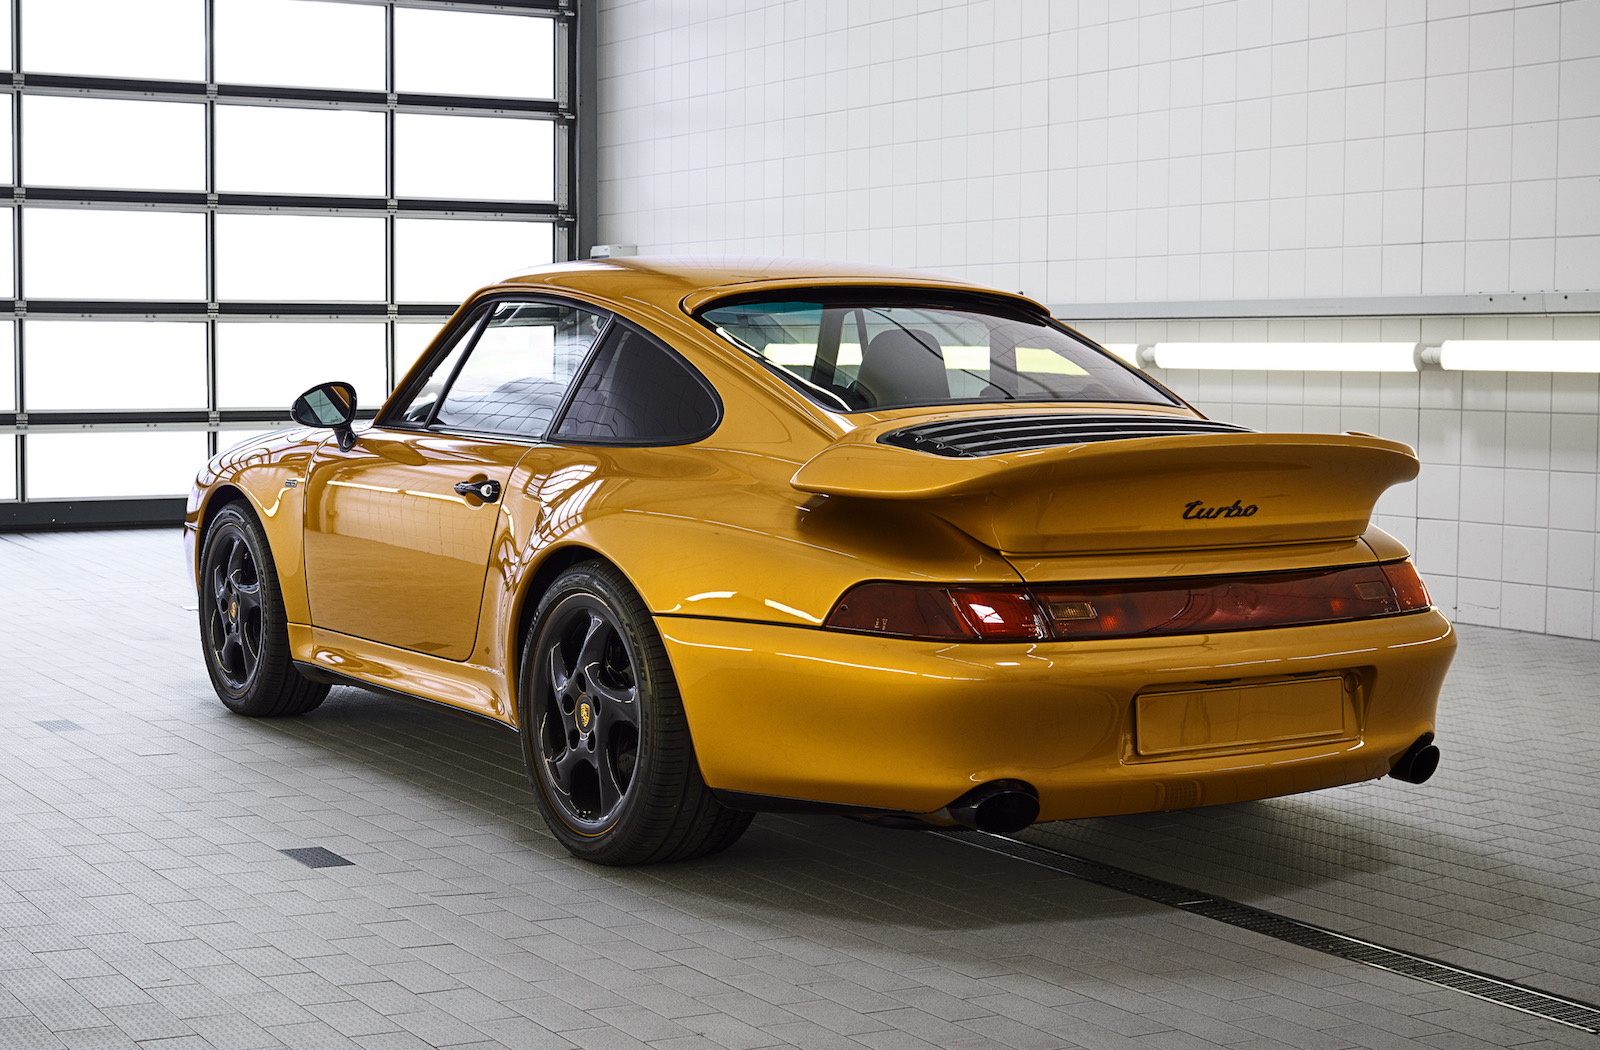 porsche classic completes 39 project gold 39 993 911 turbo performancedrive. Black Bedroom Furniture Sets. Home Design Ideas